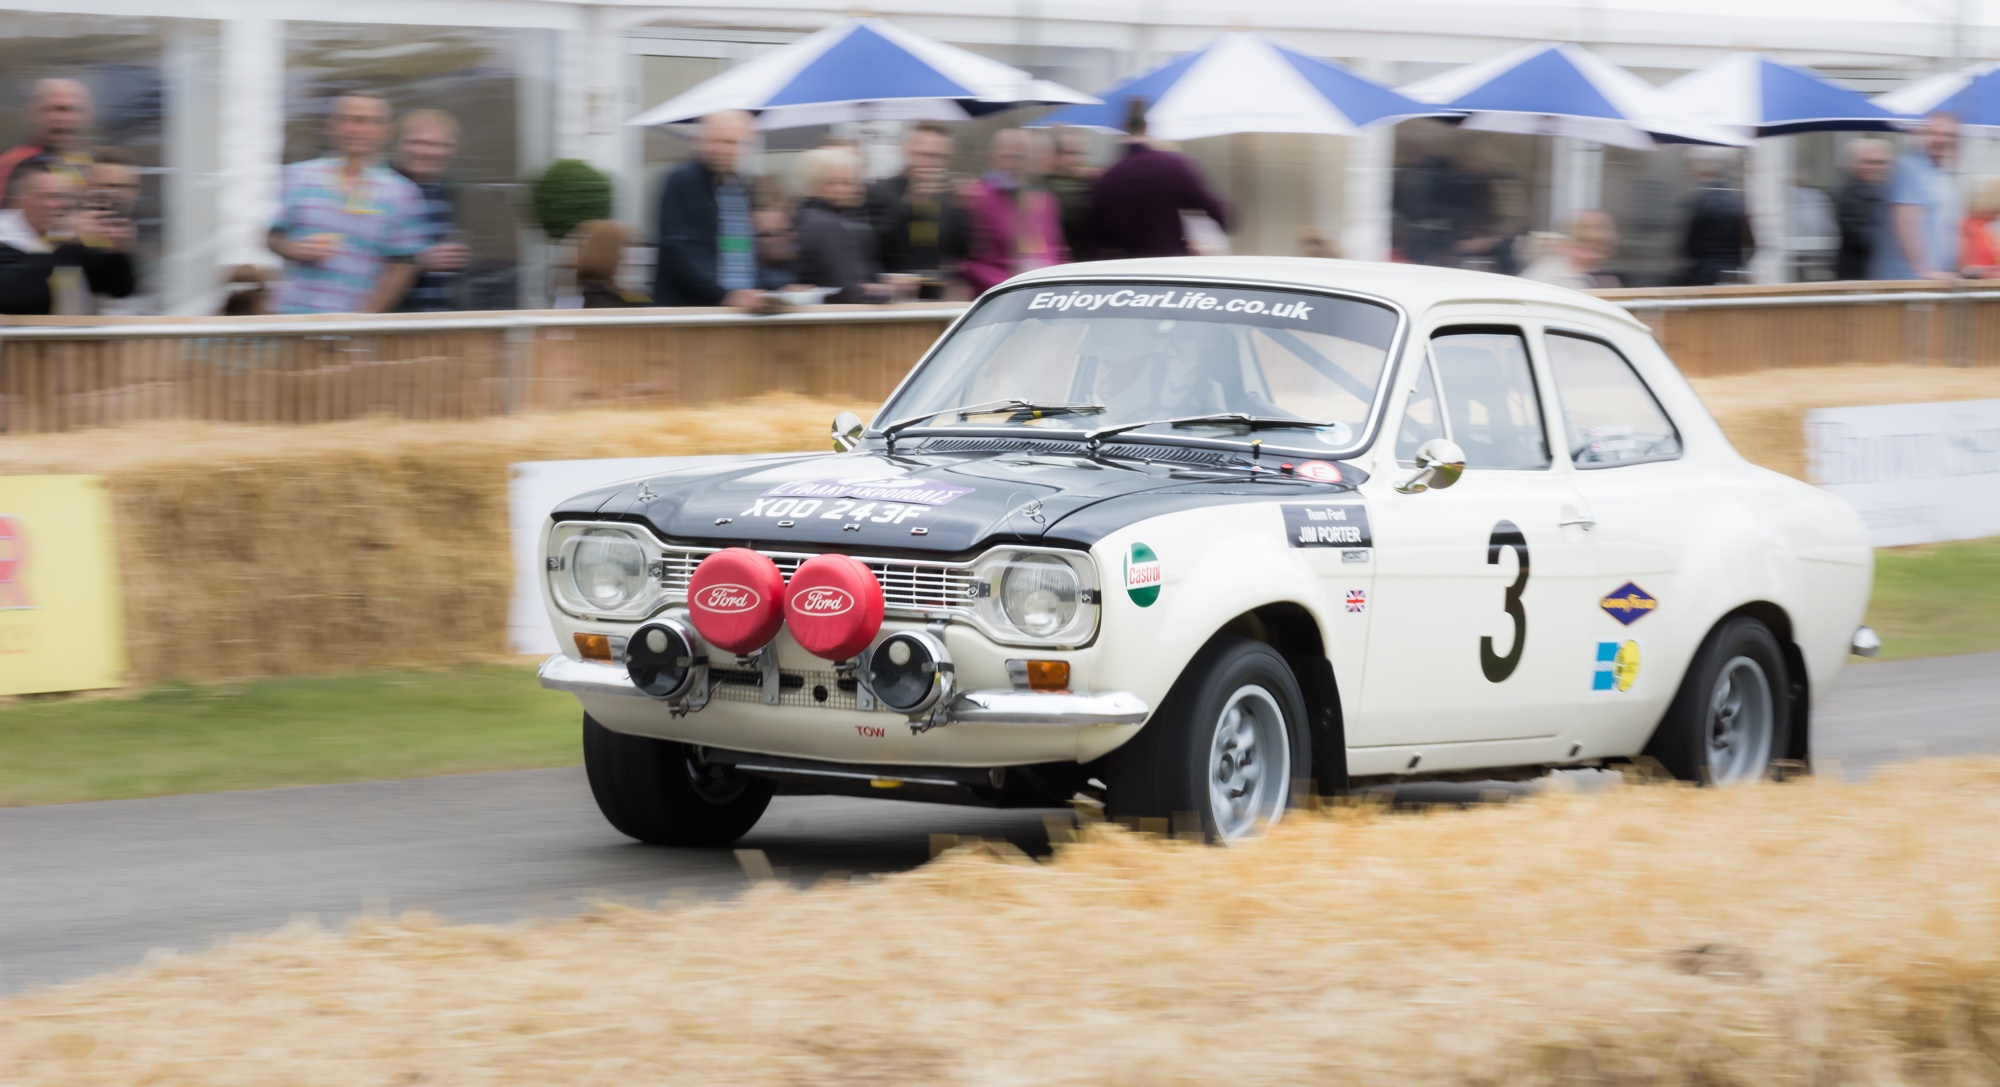 £250,000 buys you an ex-works rally prepared MkI Ford Escort. Bargain. by Roo Terry